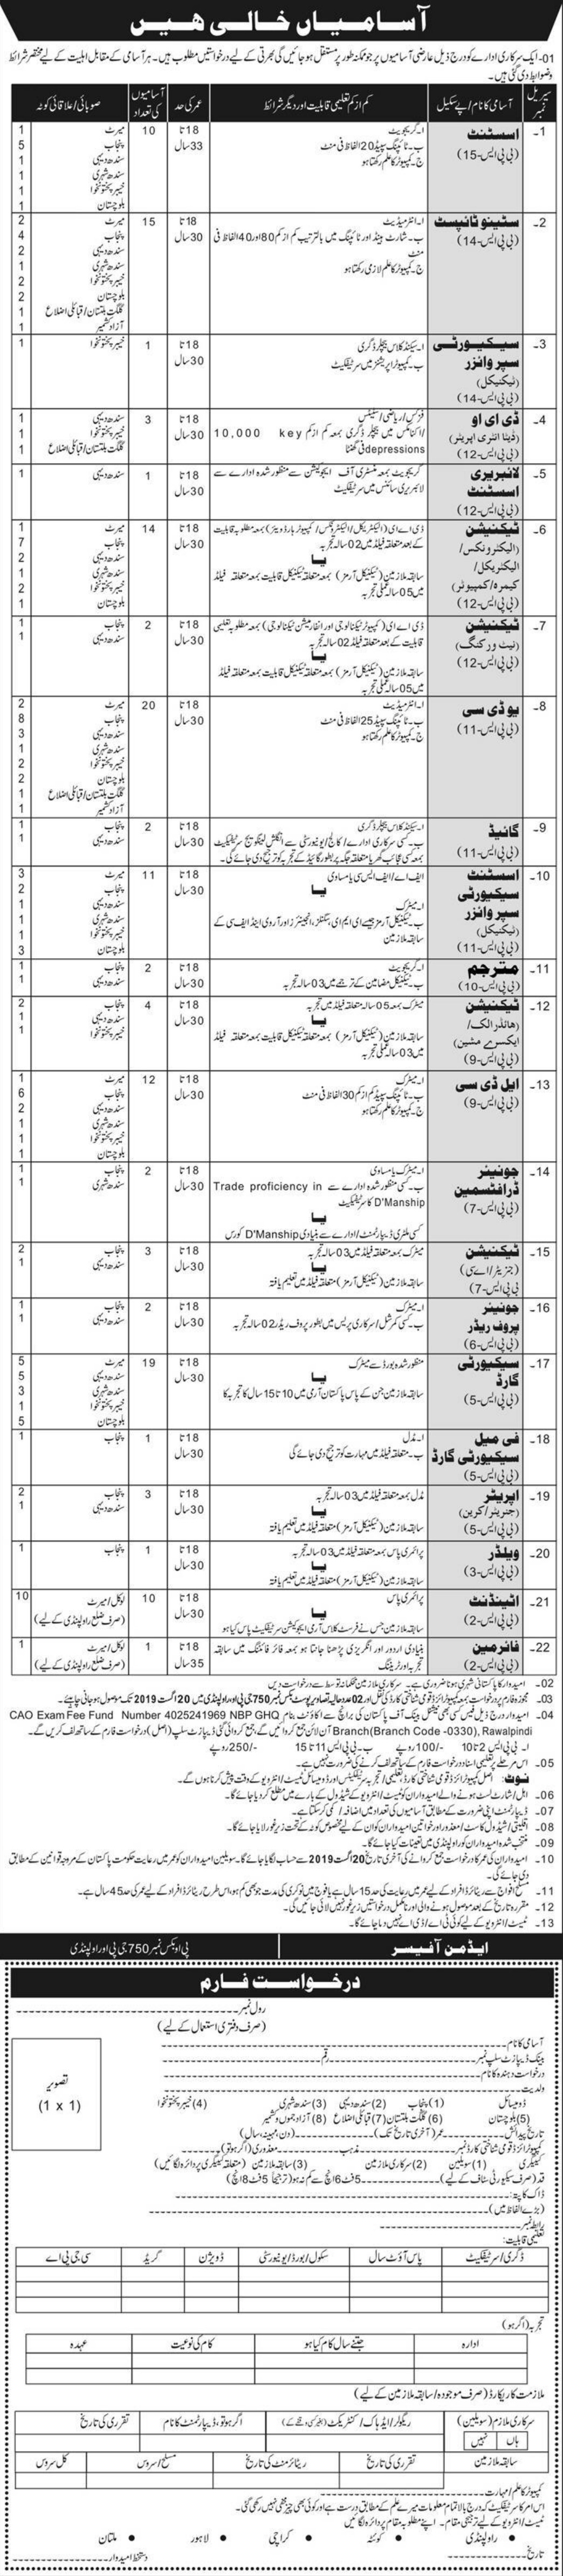 Public Sector Organization Jobs 2019 P.O.Box 750 Rawalpindi